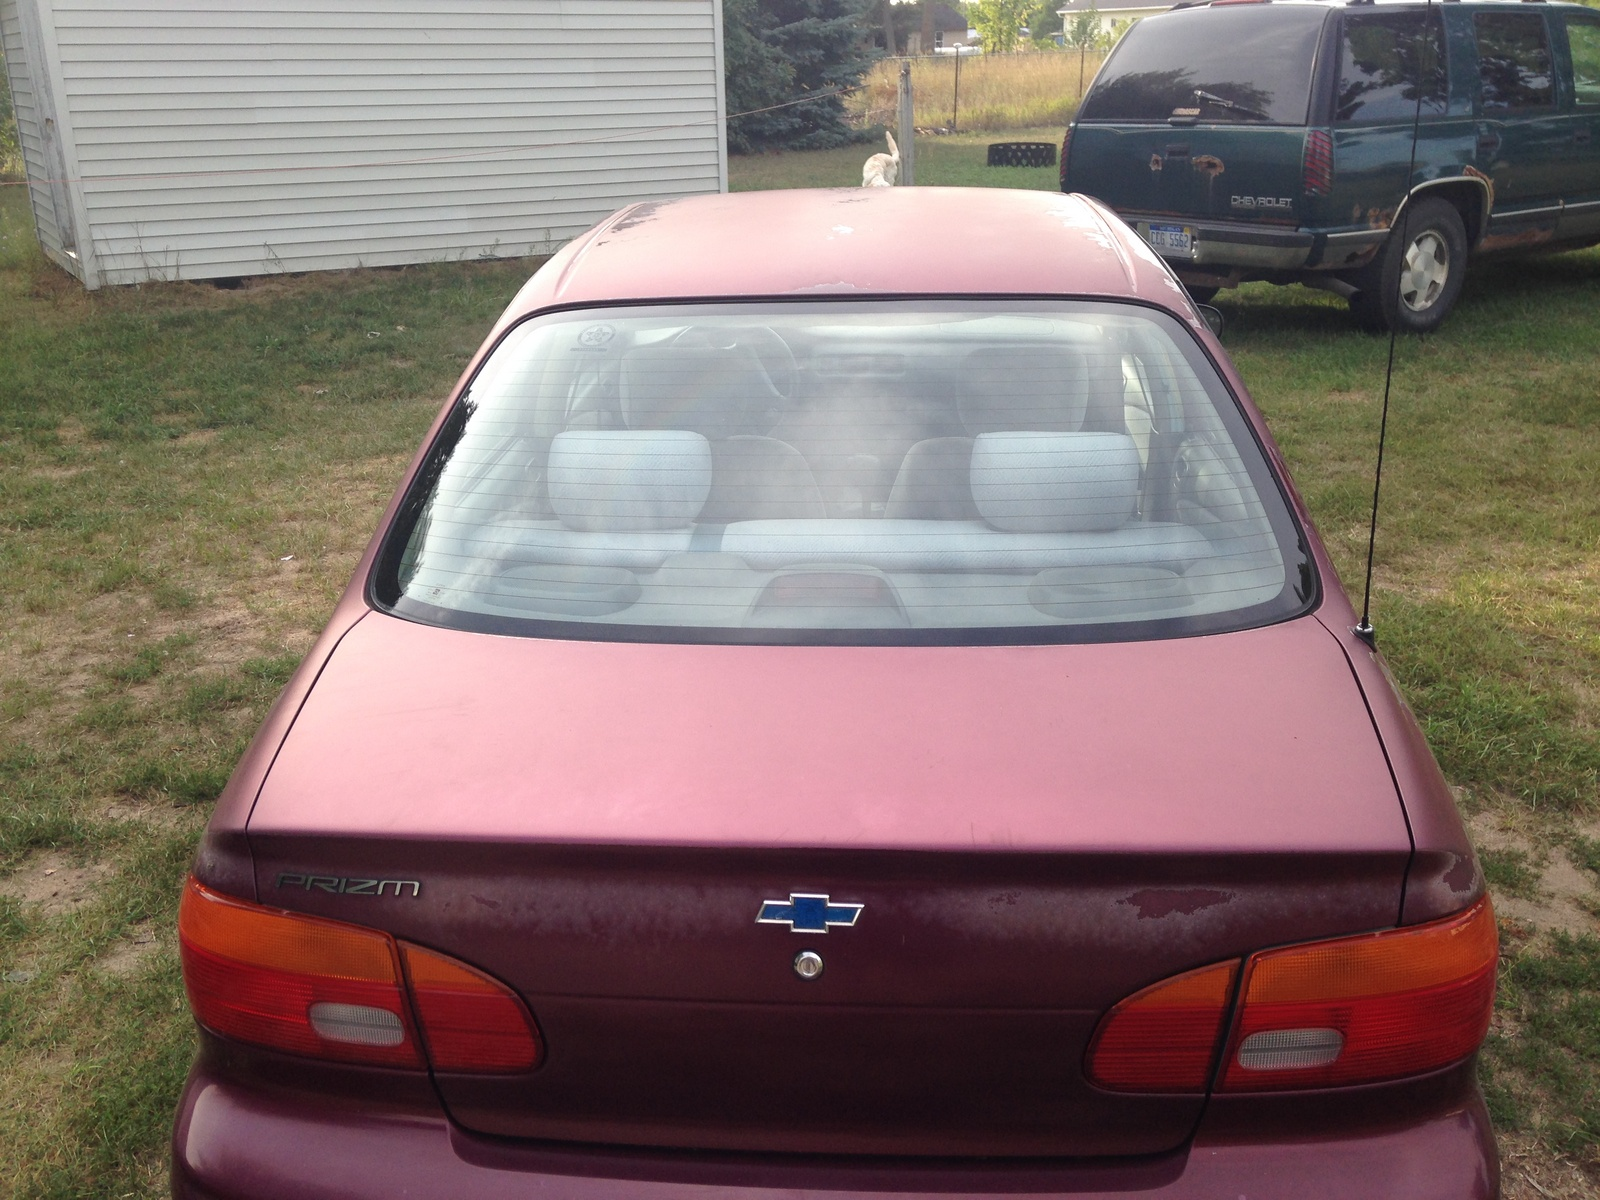 Picture of 1998 Chevrolet Prizm 4 Dr STD Sedan